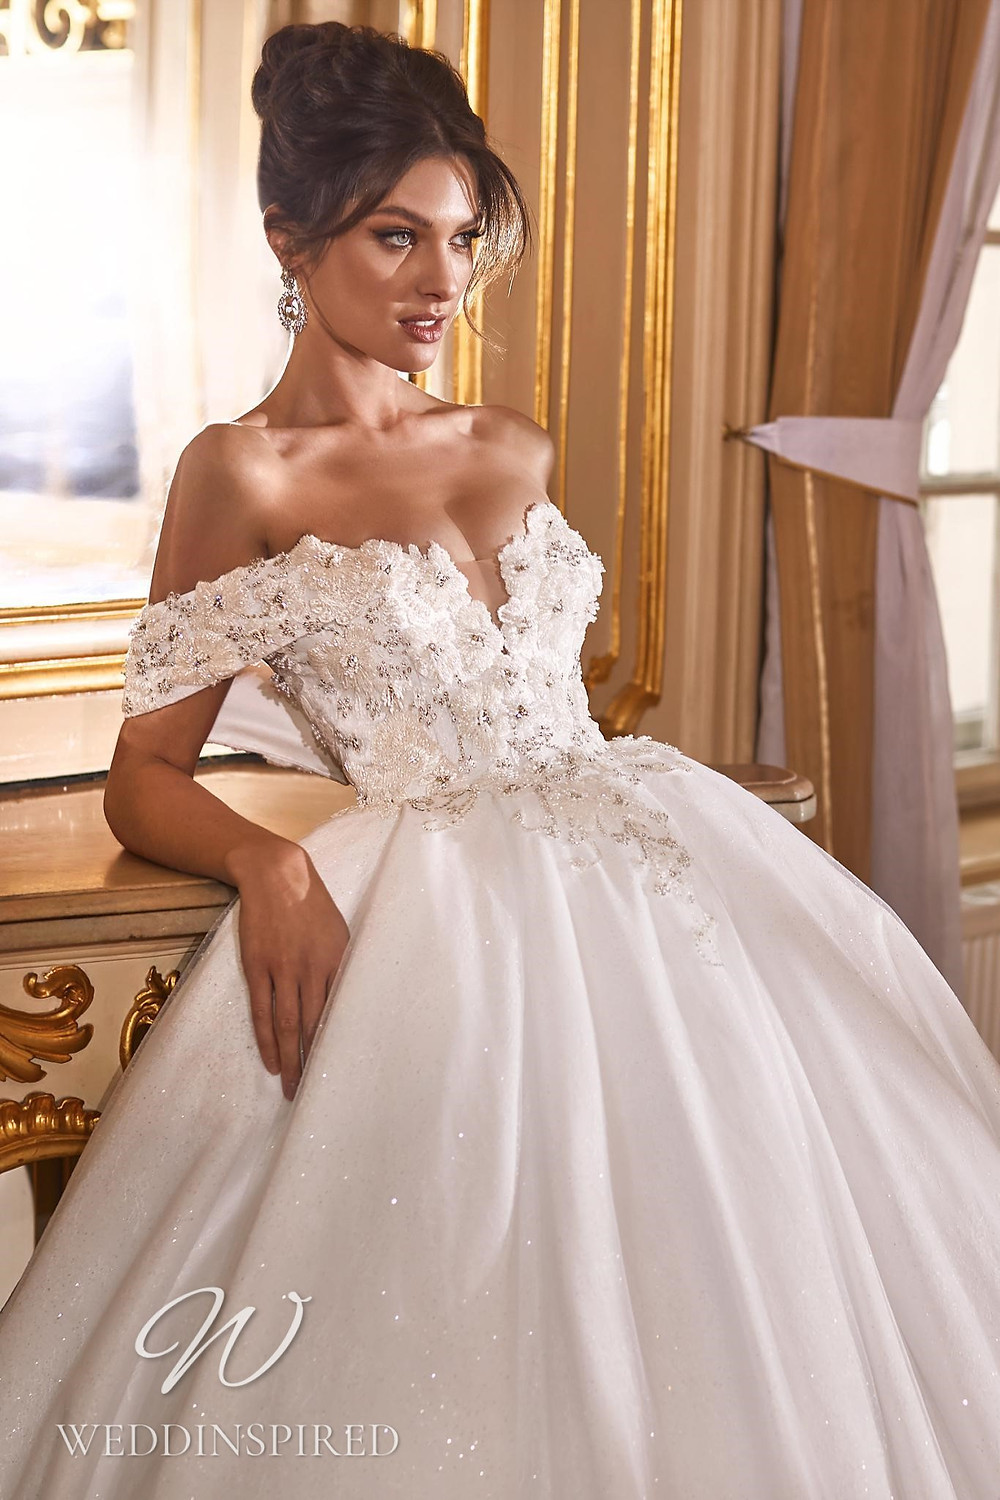 A Ricca Sposa 2022 off the shoulder lace and tulle princess wedding dress